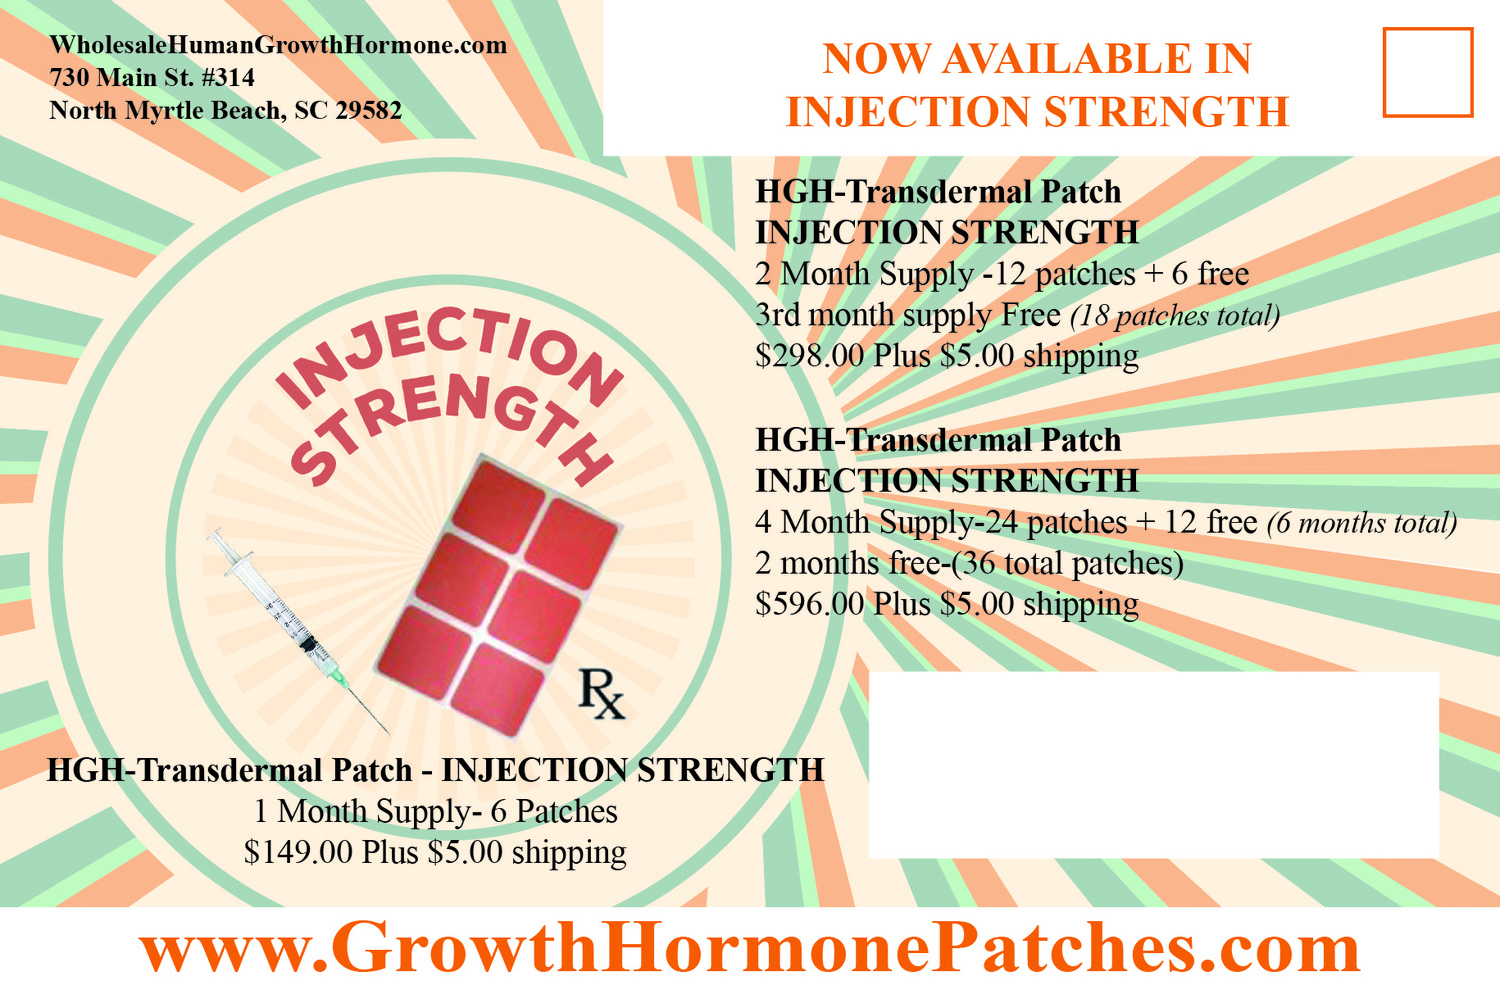 (AUTO-SHIP) HGH-Transdermal Injection strength patches (1 month Supply - 6 Patches) Shipped monthly until cancelled $94